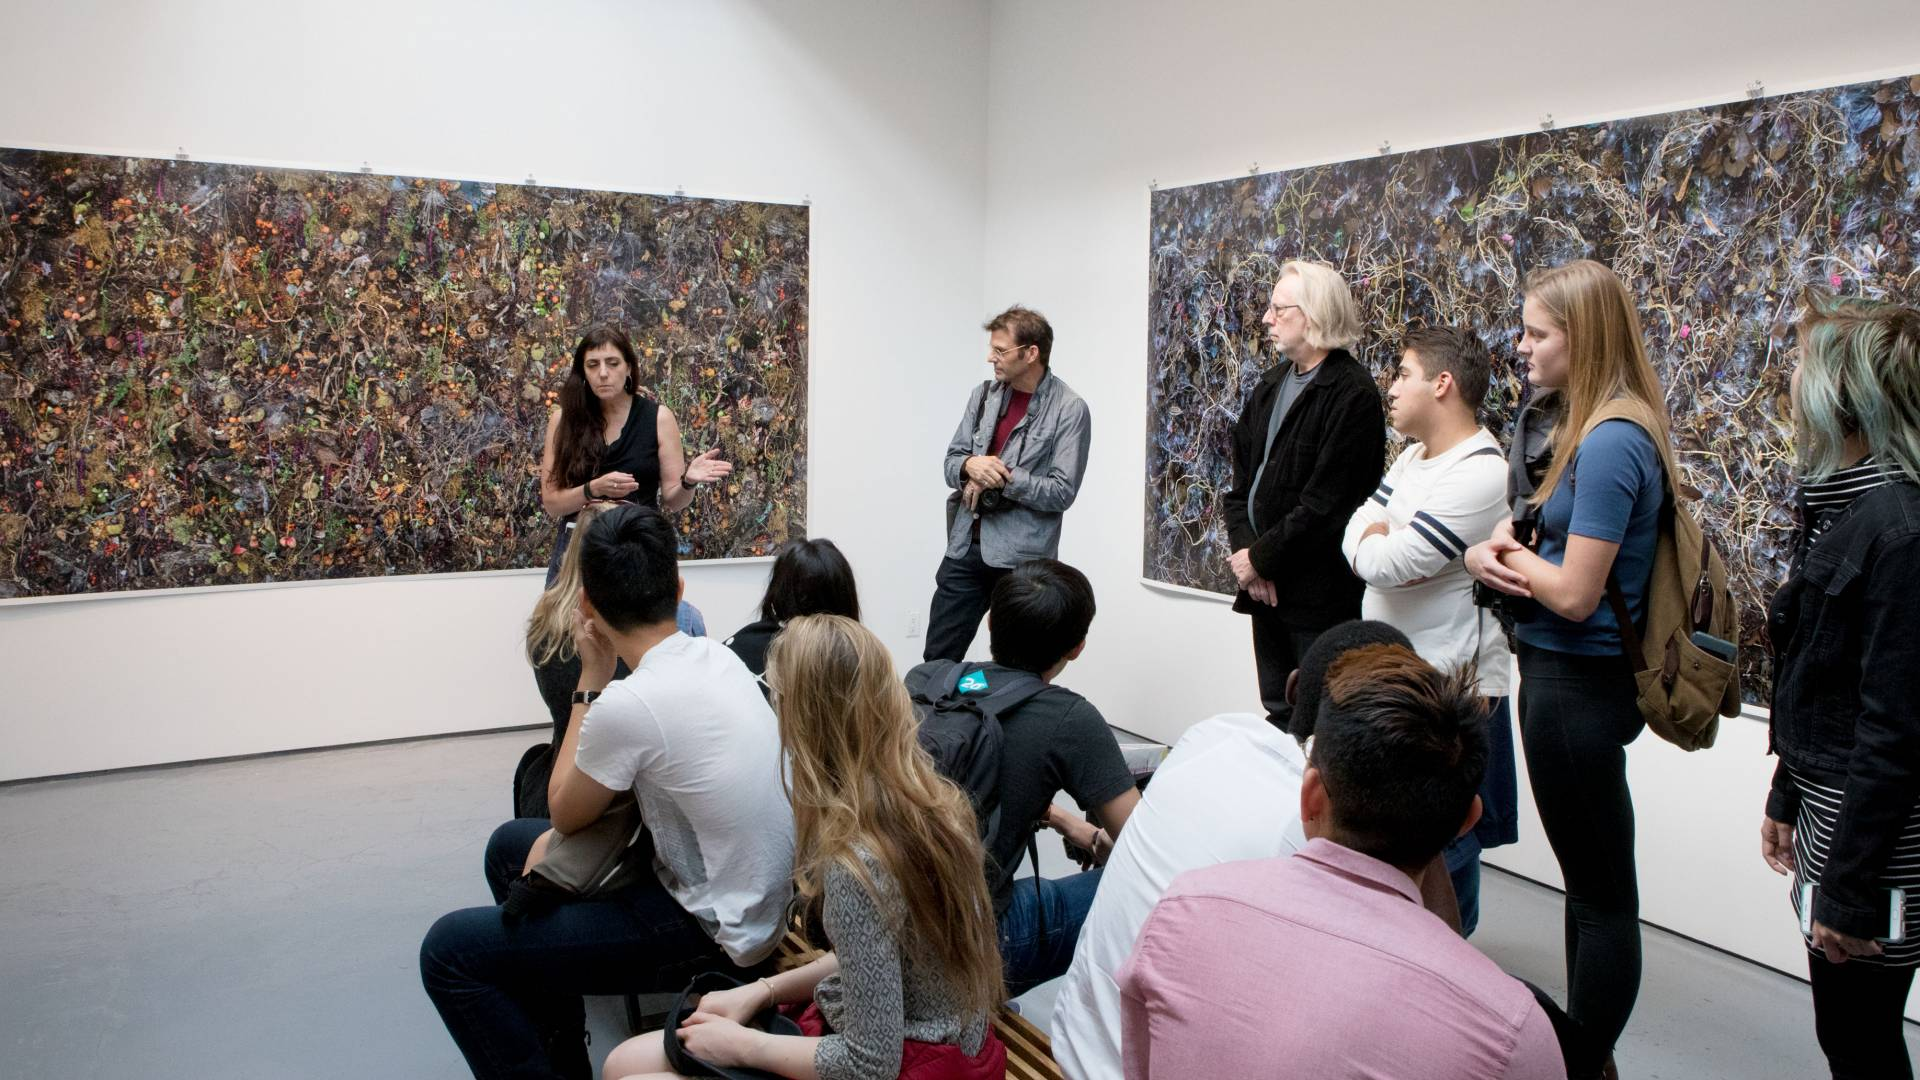 Artist discusses her work with students in New York gallery